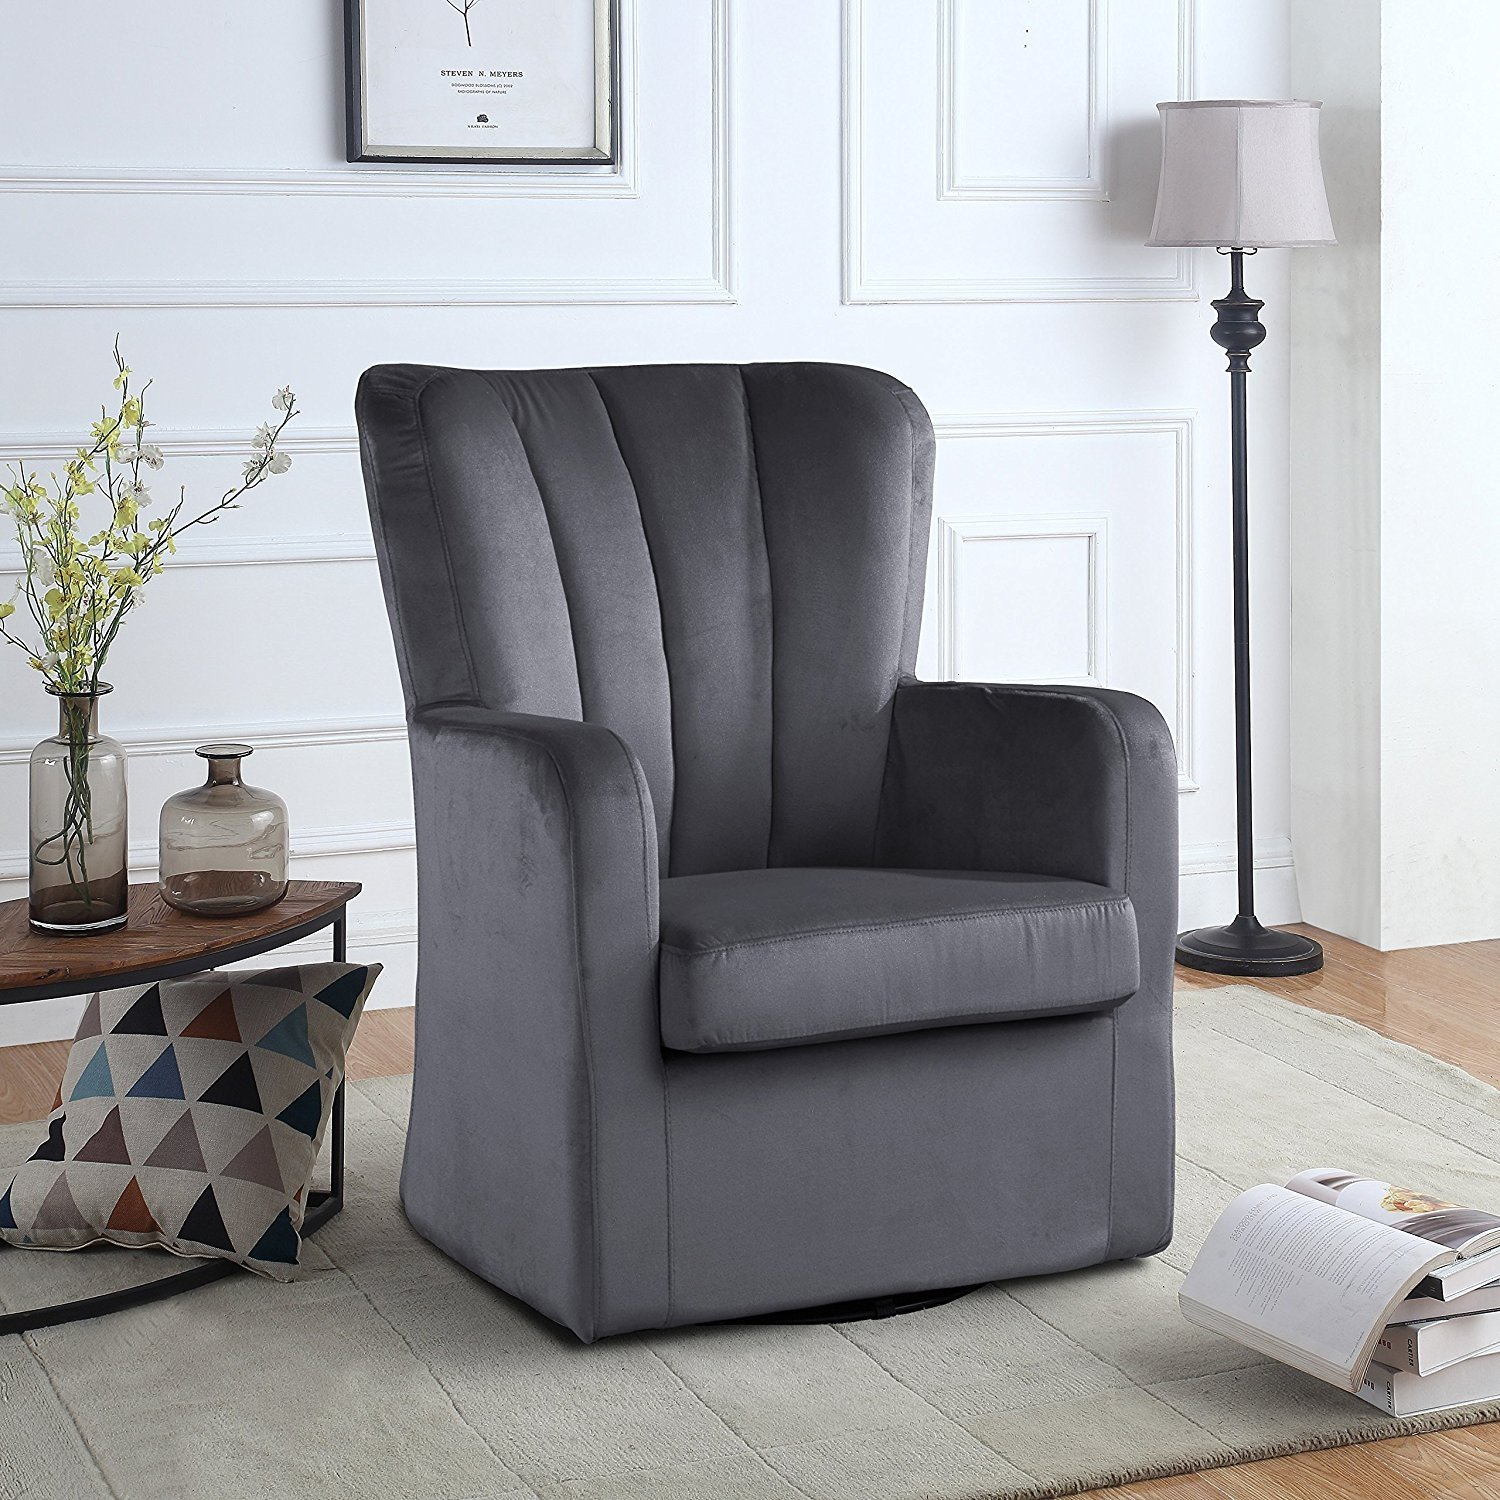 Kalosa Swivel Accent Chair: Modern Velvet Swivel Armchair, Rotating Accent Chair For